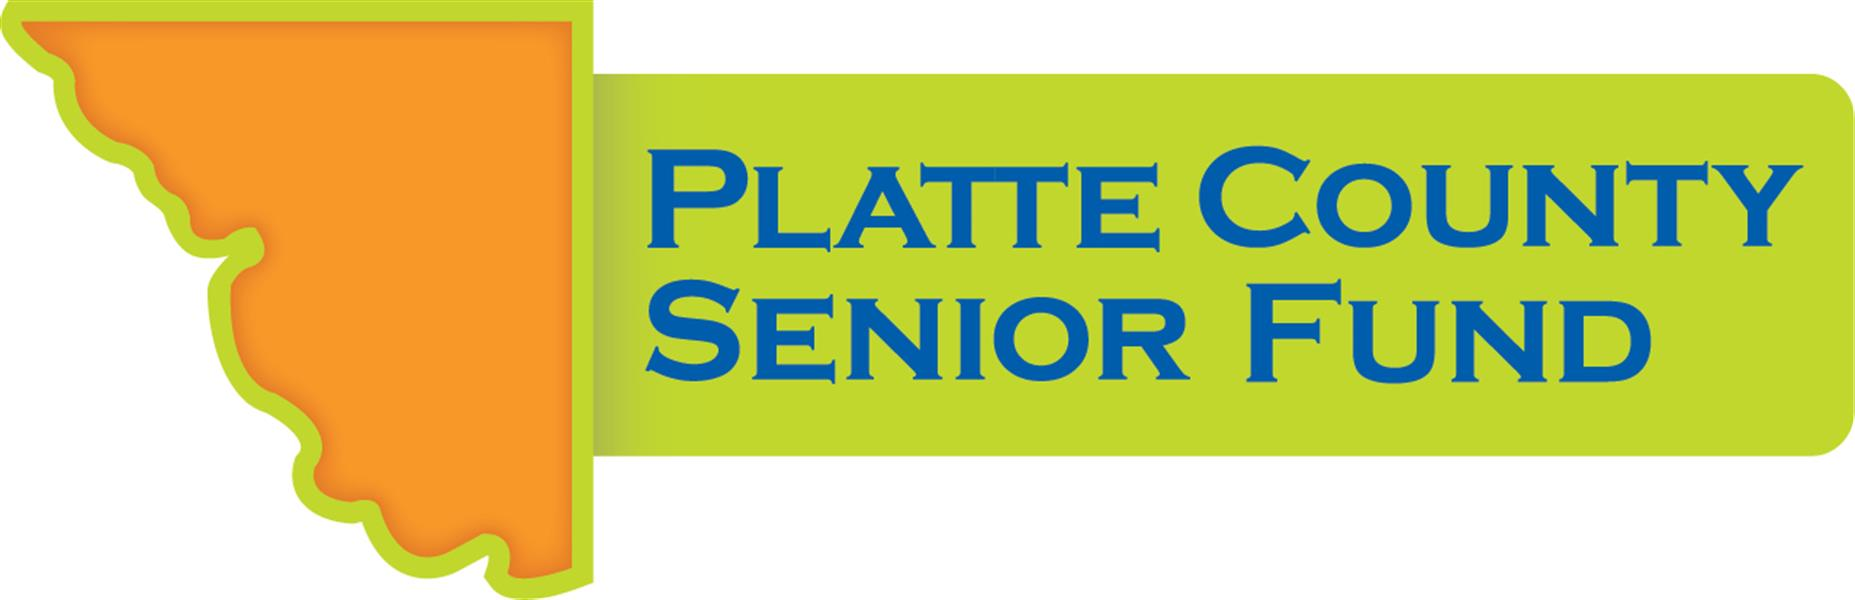 Platte County Senior Fund